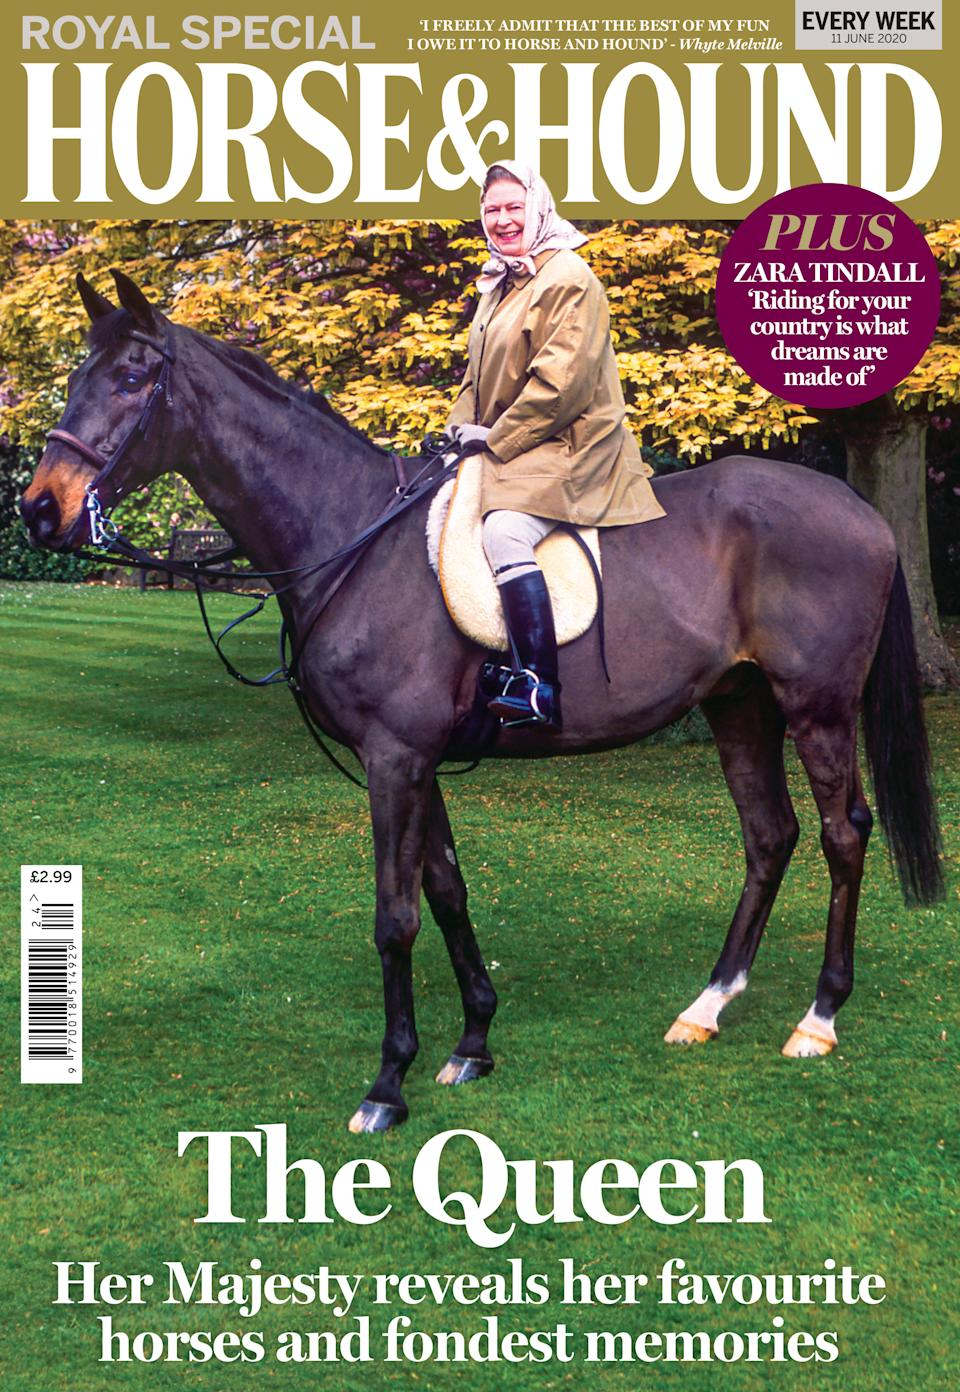 EMBARGOED TO 0001 THURSDAY JUNE 11 Undated handout photo issued by Horse and Hound showing the cover photo of the Queen riding Sanction. The Queen has revealed her favourite horses, including Sanction, from the seven decades of her reign for the first time.